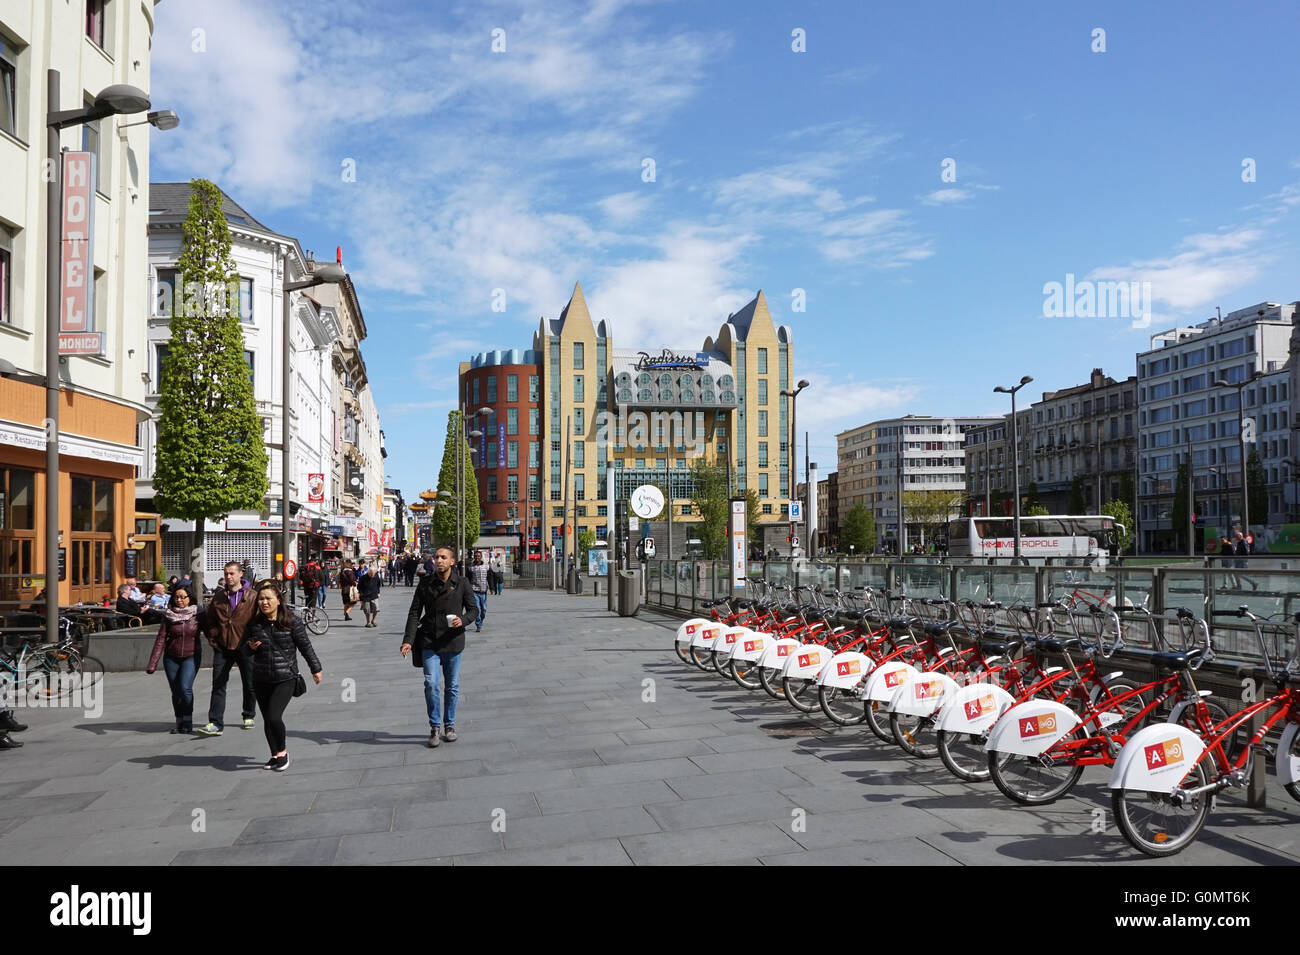 Bycicle parking Antwerp Queen Astrid plaza Hotel radisson tourists - Stock Image